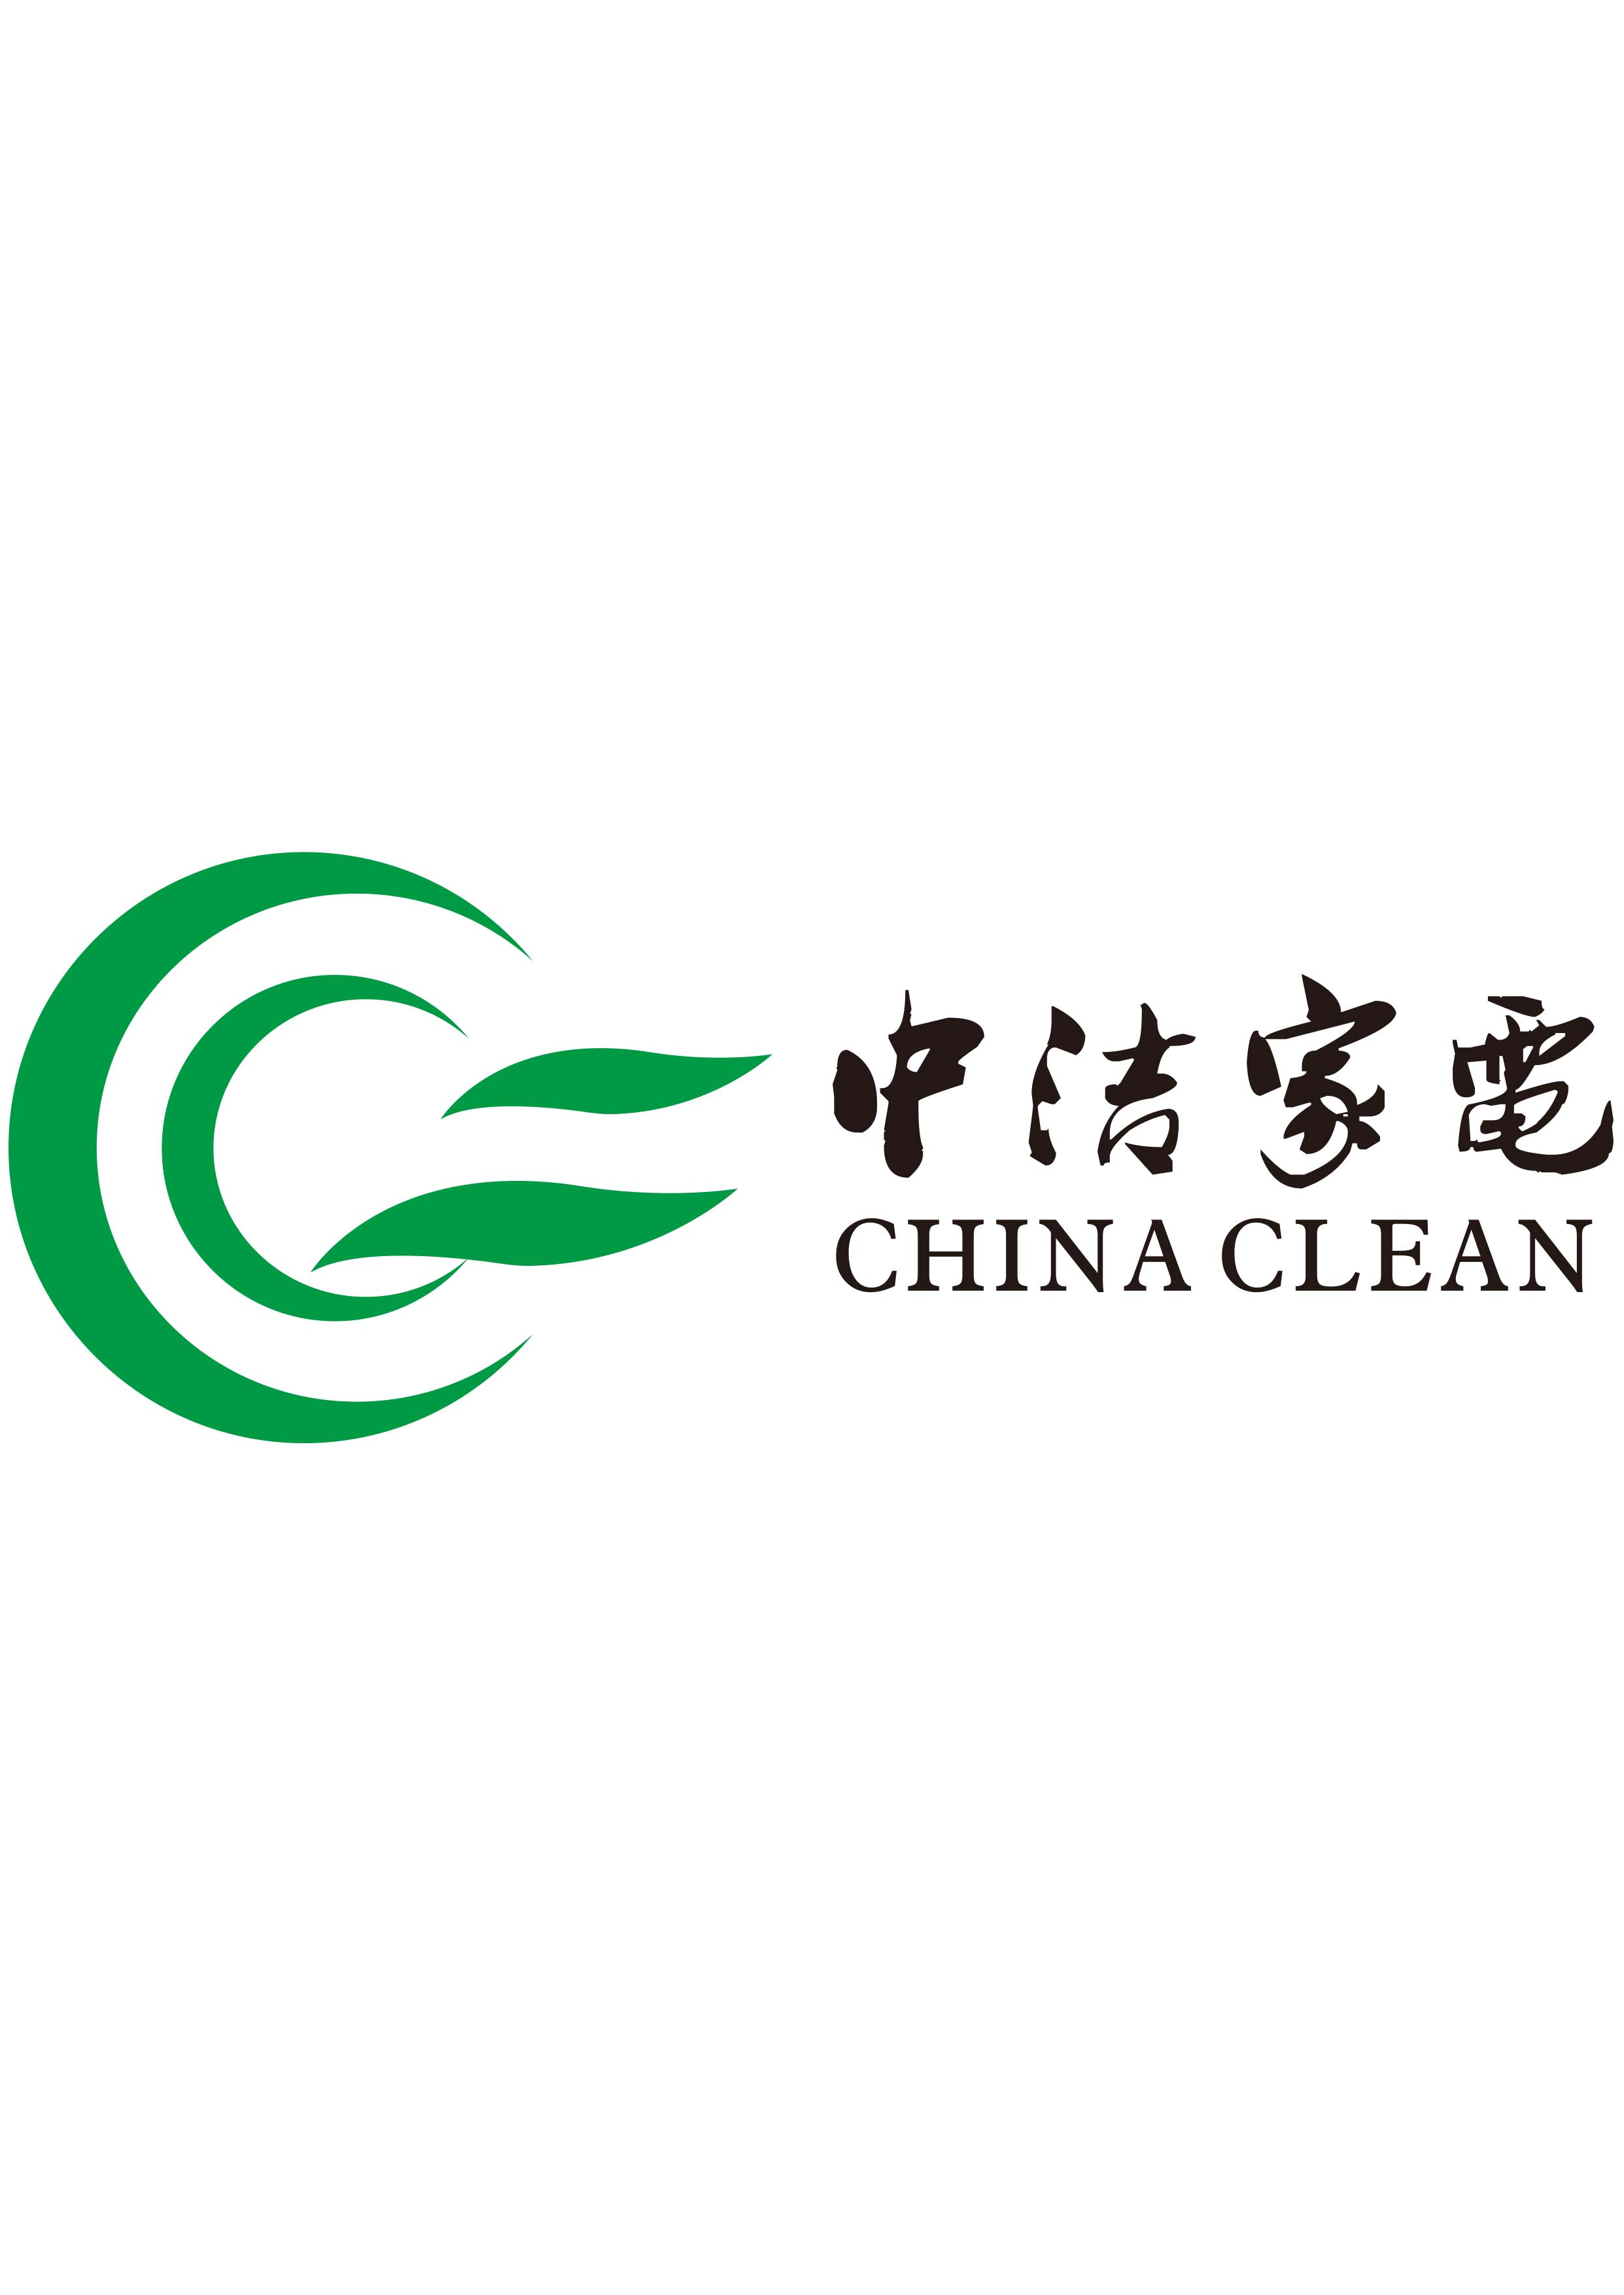 Ningbo Chinaclean Household Appliances Manufacture Co.,ltd